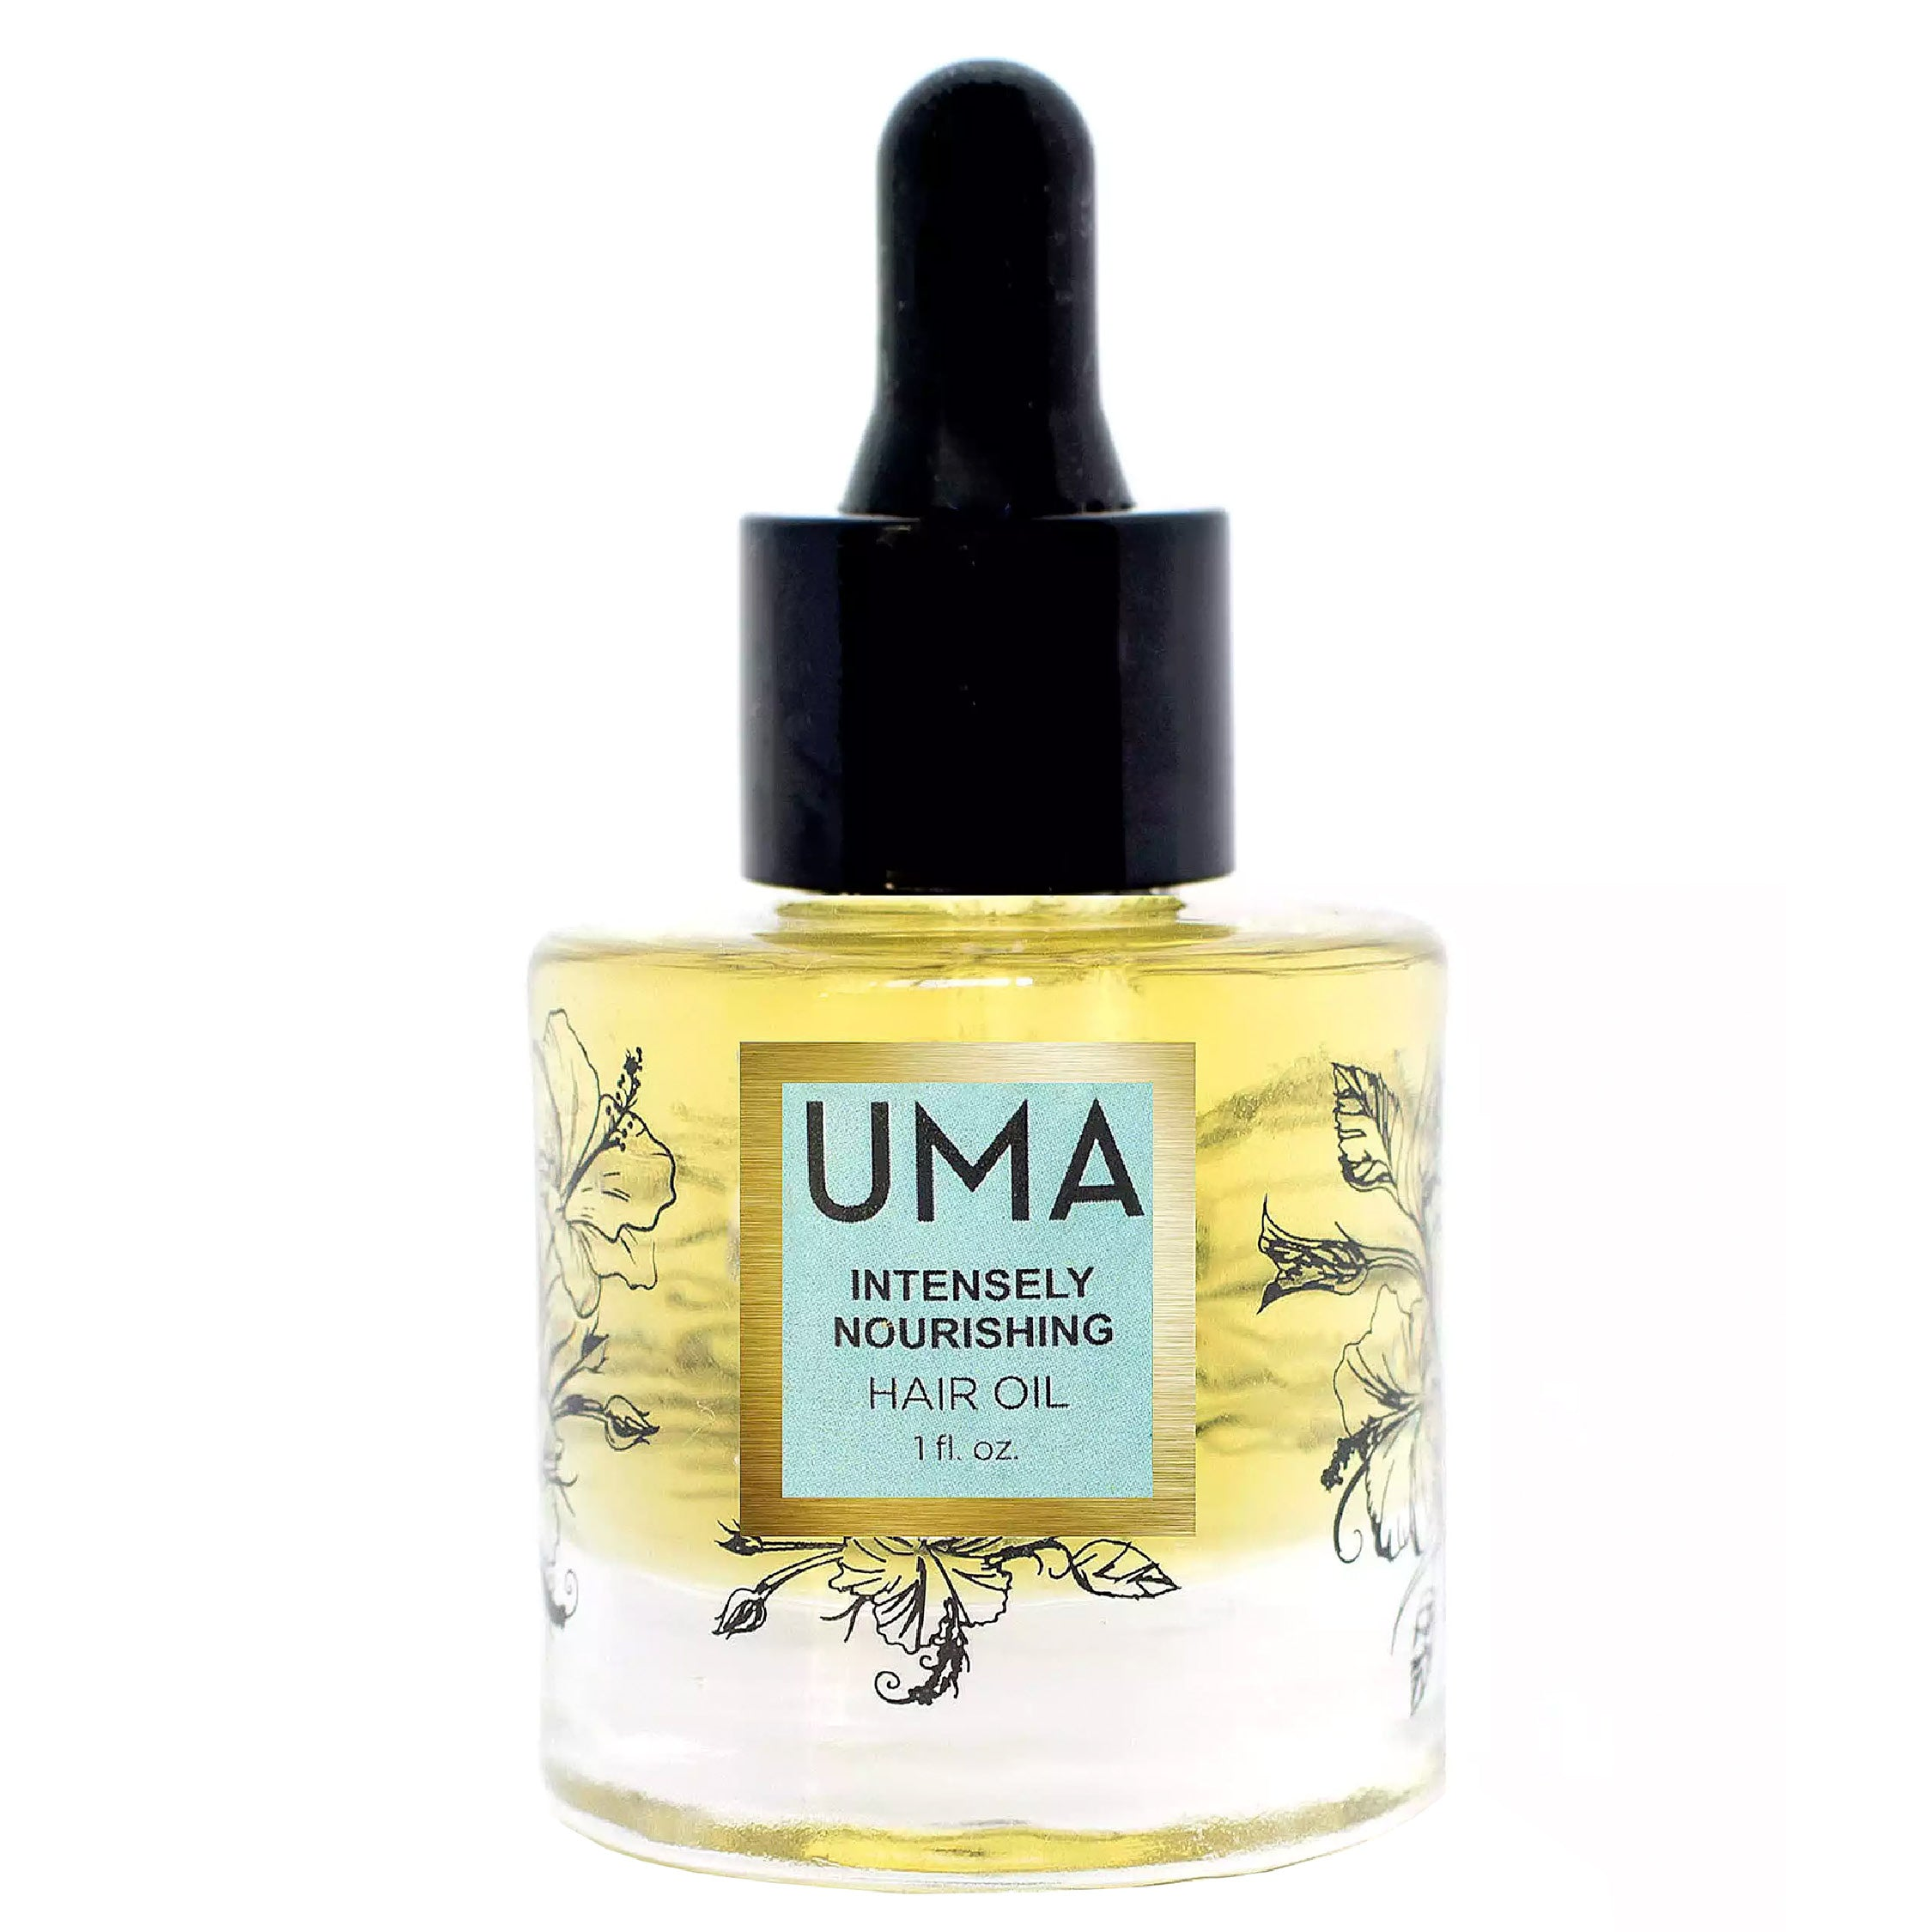 Uma Oils - Intensely Nourishing Hair Oil